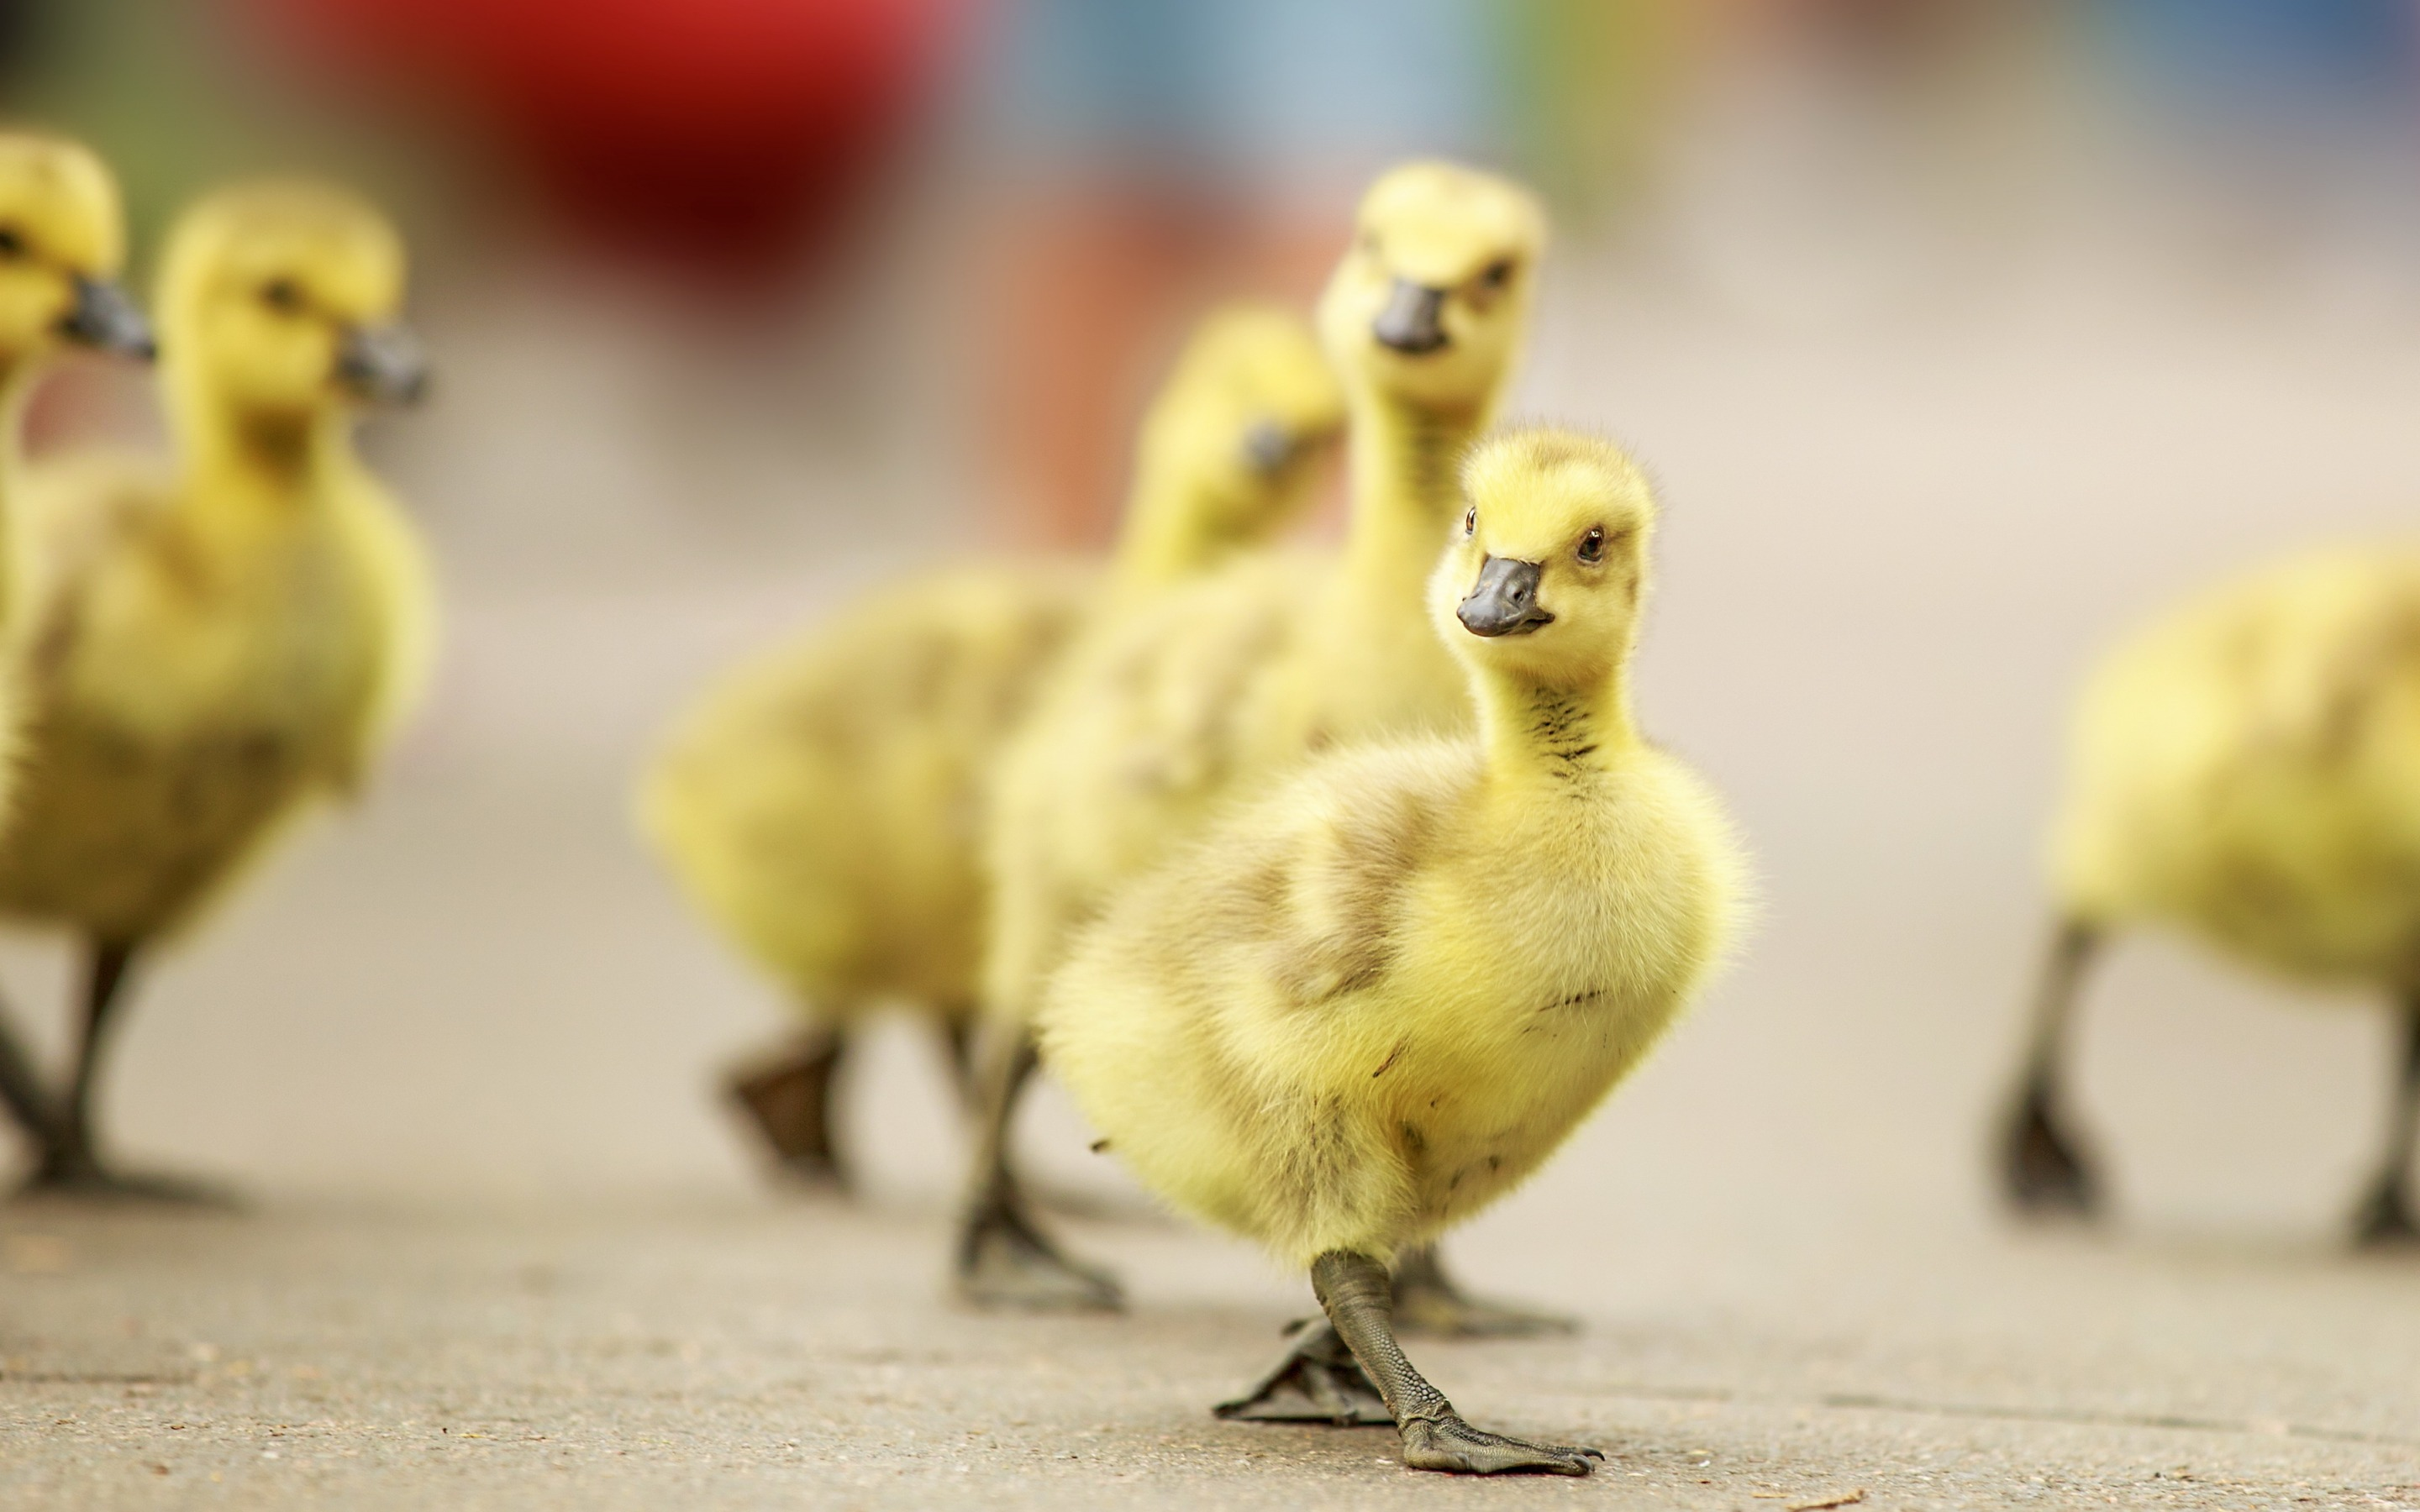 Chicken Baby Cute Wallpapers 2880x1800 608909